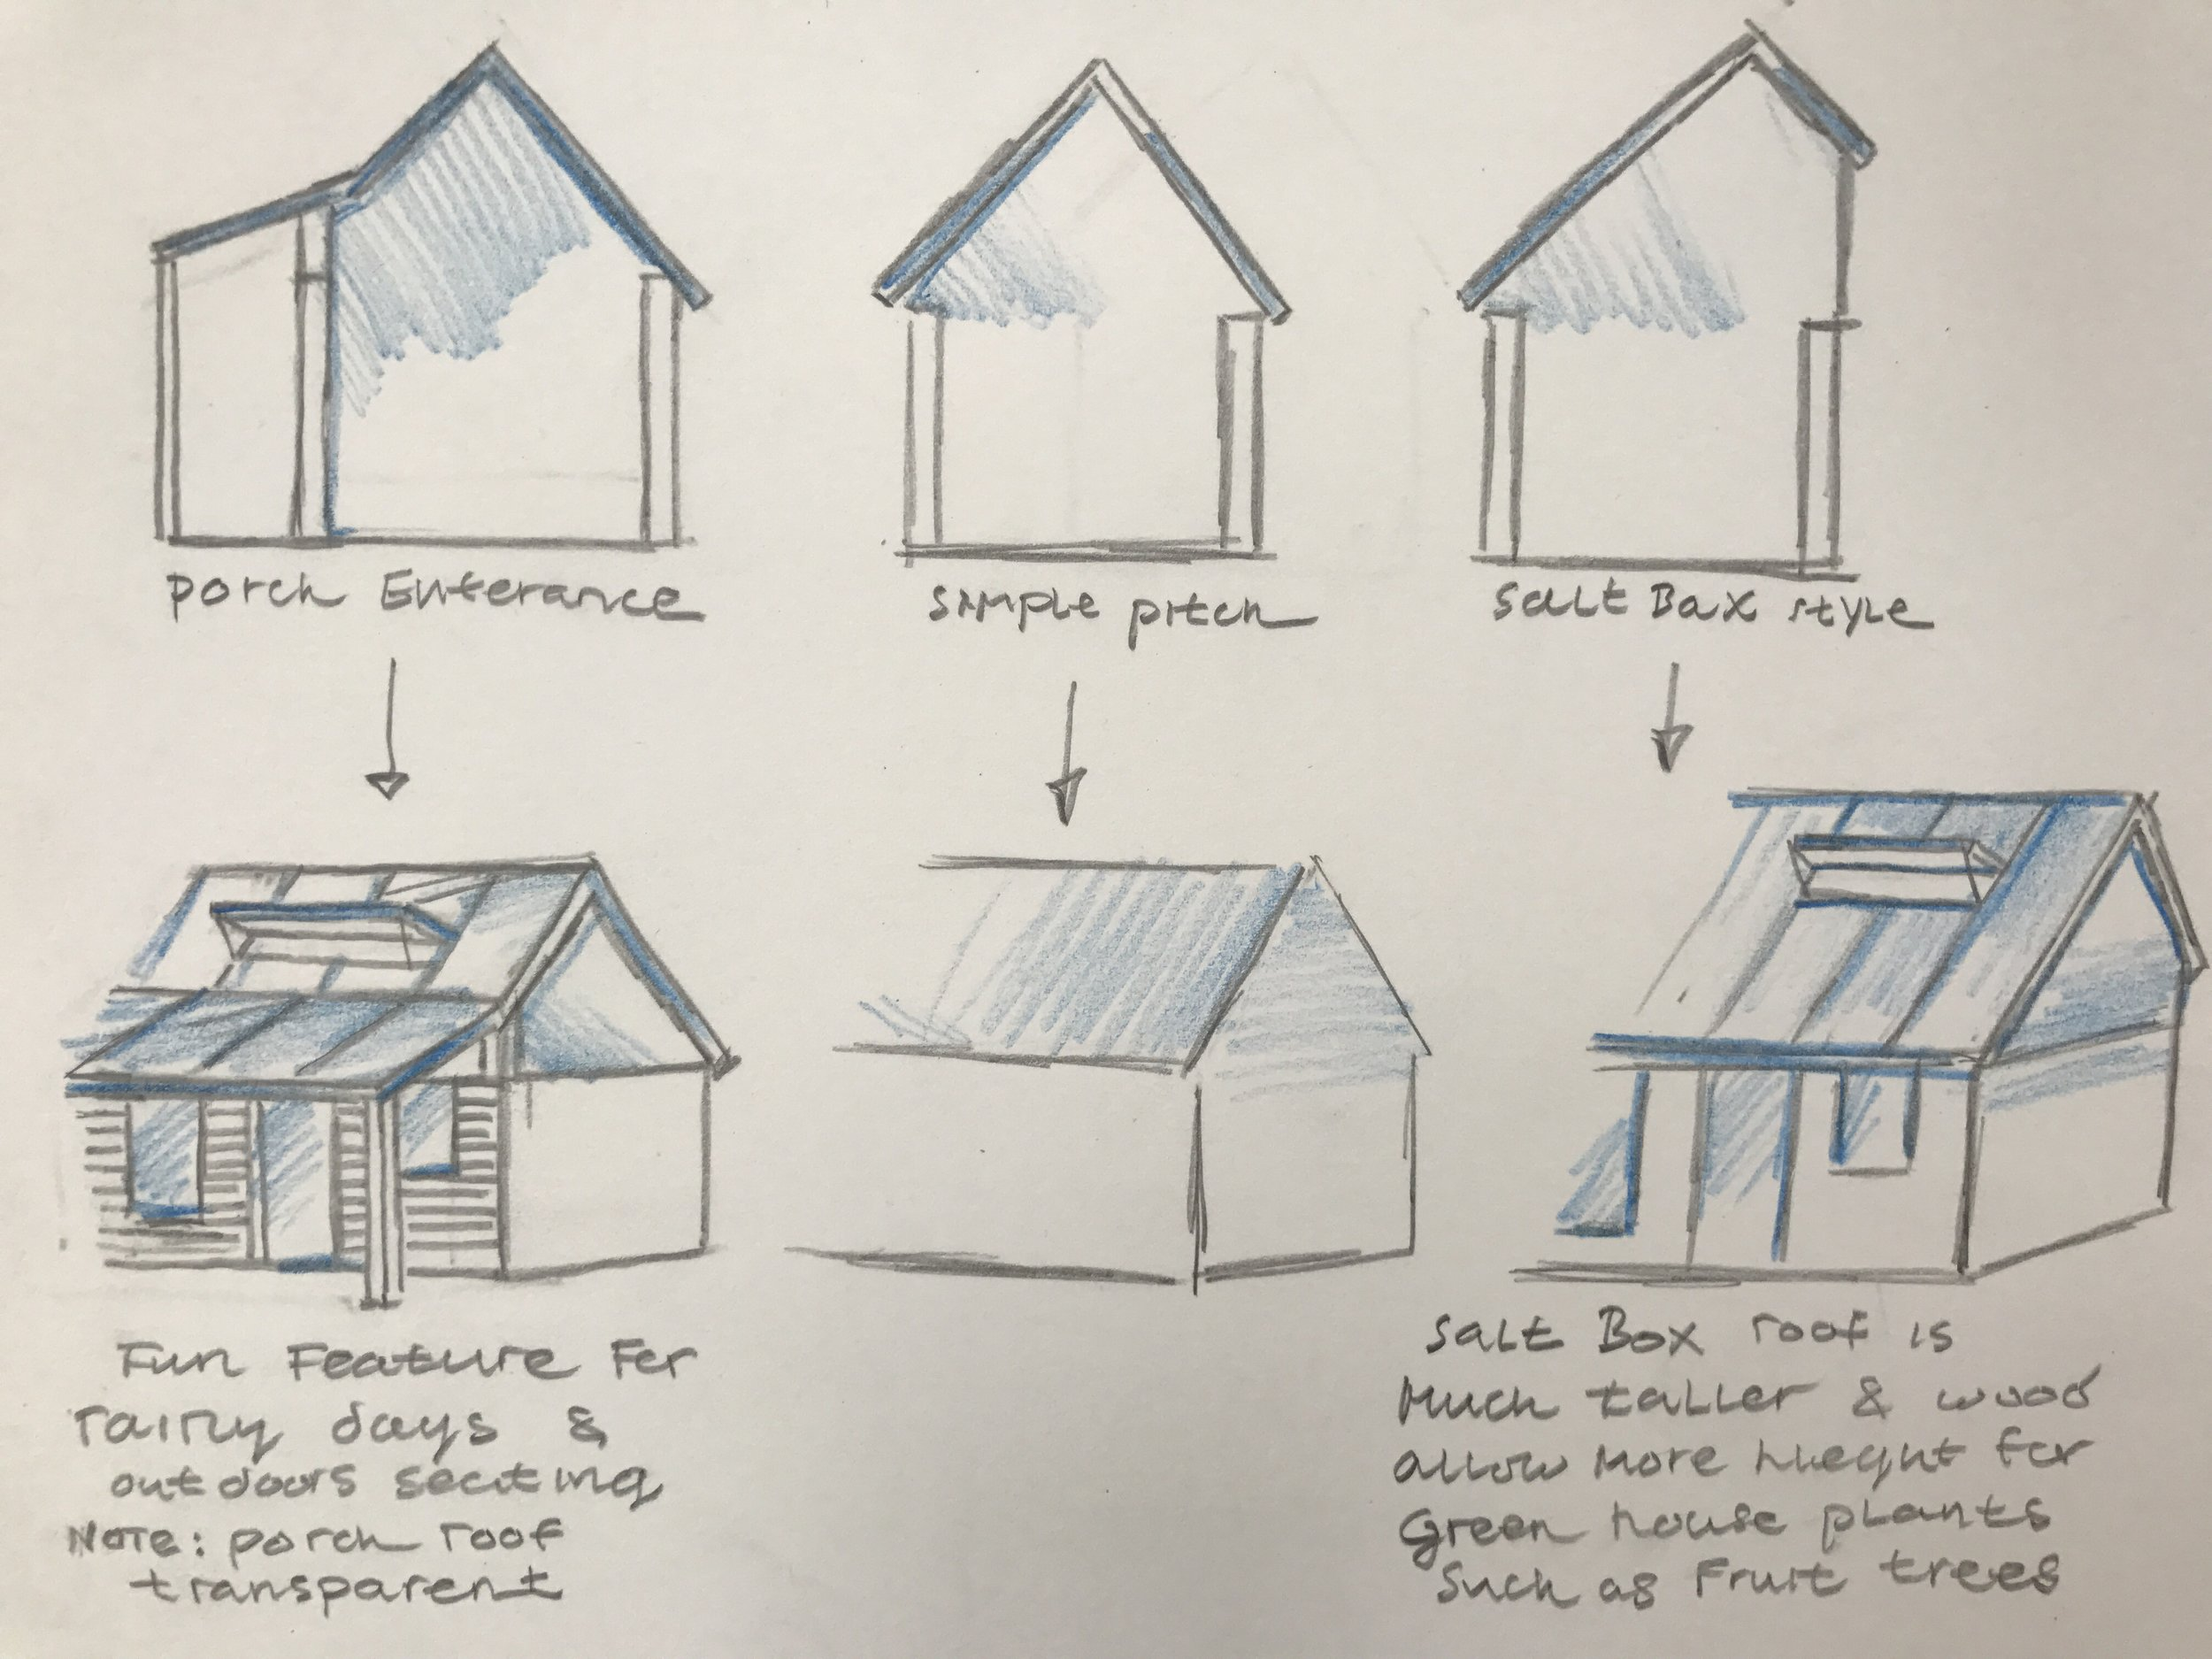 There are several roof styles to choose from. These three are the most traditional and efficient. On the left you can have a pitched roof which extends to create an overhang that can be used as a sheltered porch. This overhang could also be transparent to let light in while serving as a shelter from the rain. Then in the middle, a simple pitched roof which is timeless and the most cost effective. On the right side you have an ice box style frame which is taller than the other roofs and more of an L shape. This would create extra interior height for let's say a small fruit trees and or a greater aesthetic effect.